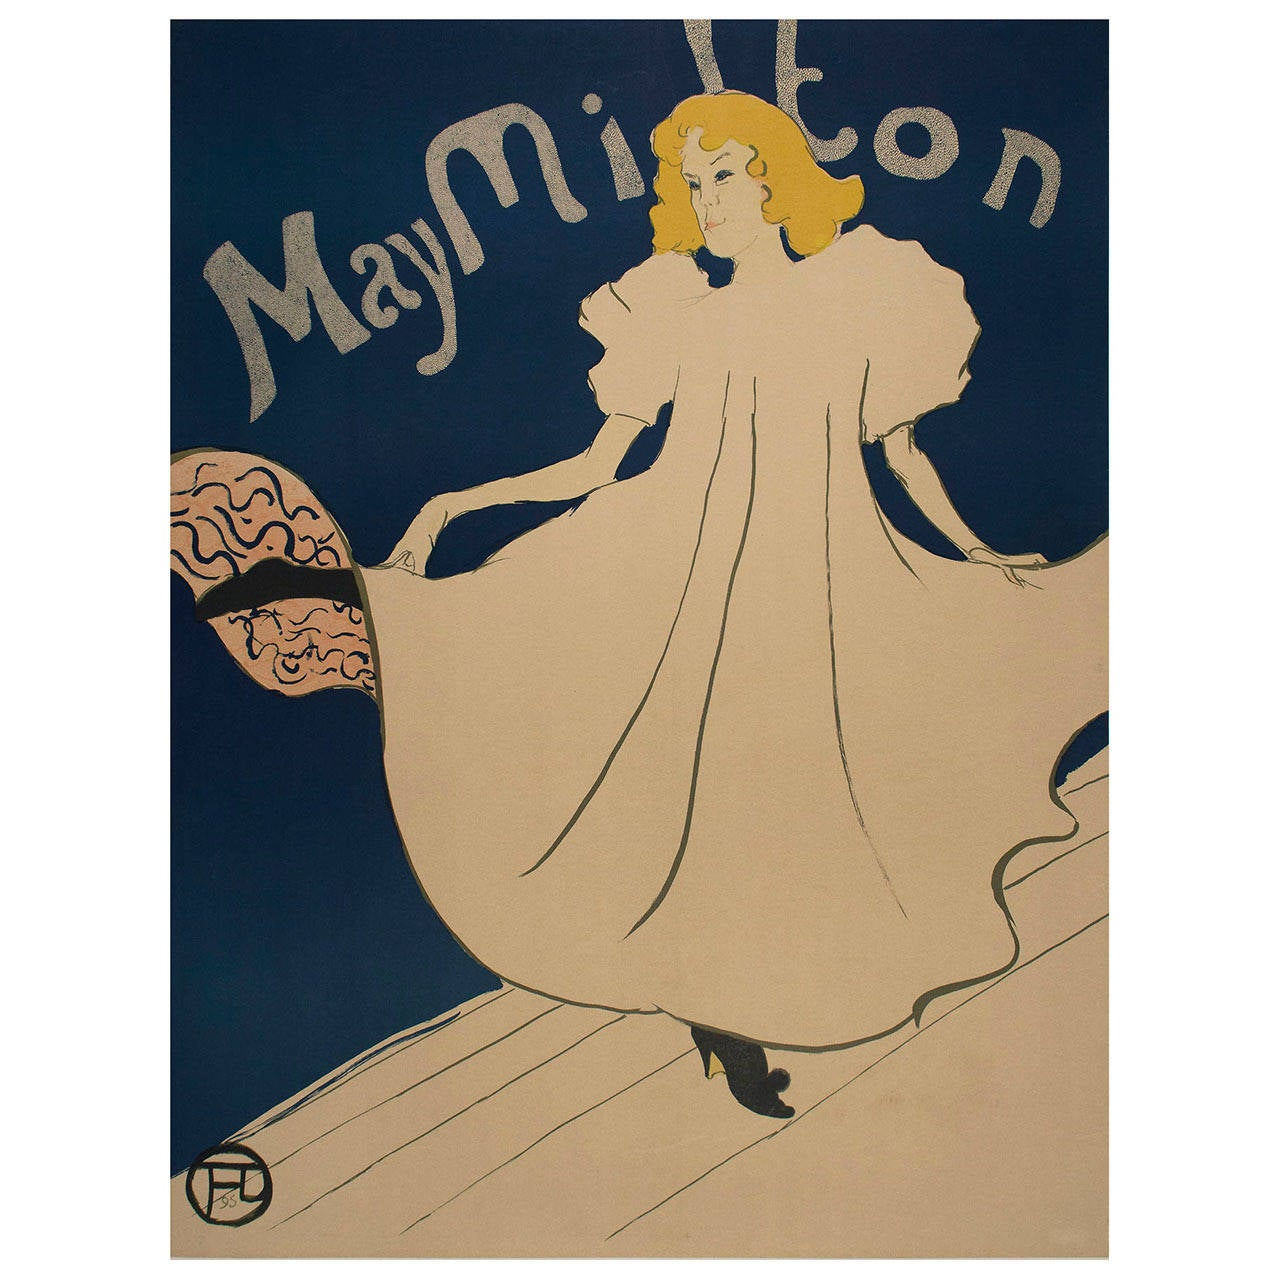 original poster by toulouse lautrec of may milton for sale at 1stdibs. Black Bedroom Furniture Sets. Home Design Ideas